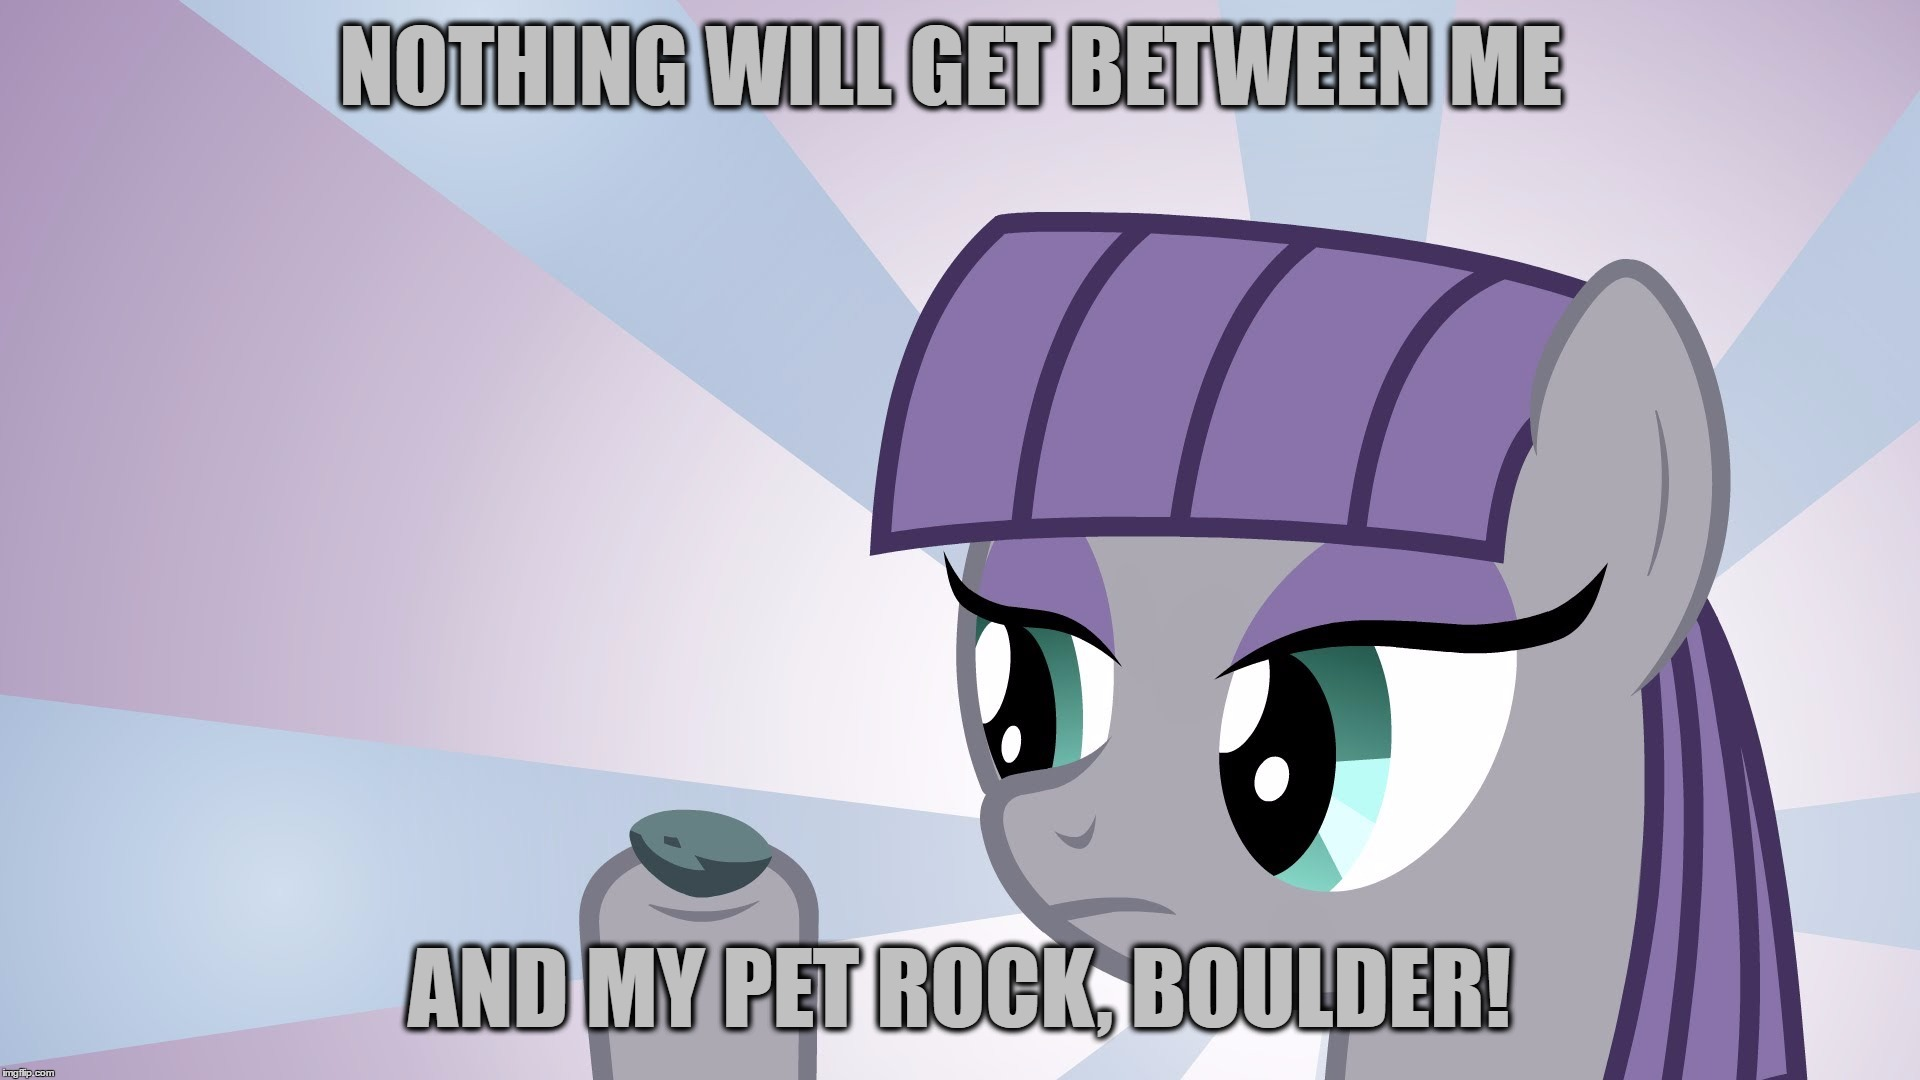 NOTHING WILL GET BETWEEN ME AND MY PET ROCK, BOULDER! | made w/ Imgflip meme maker